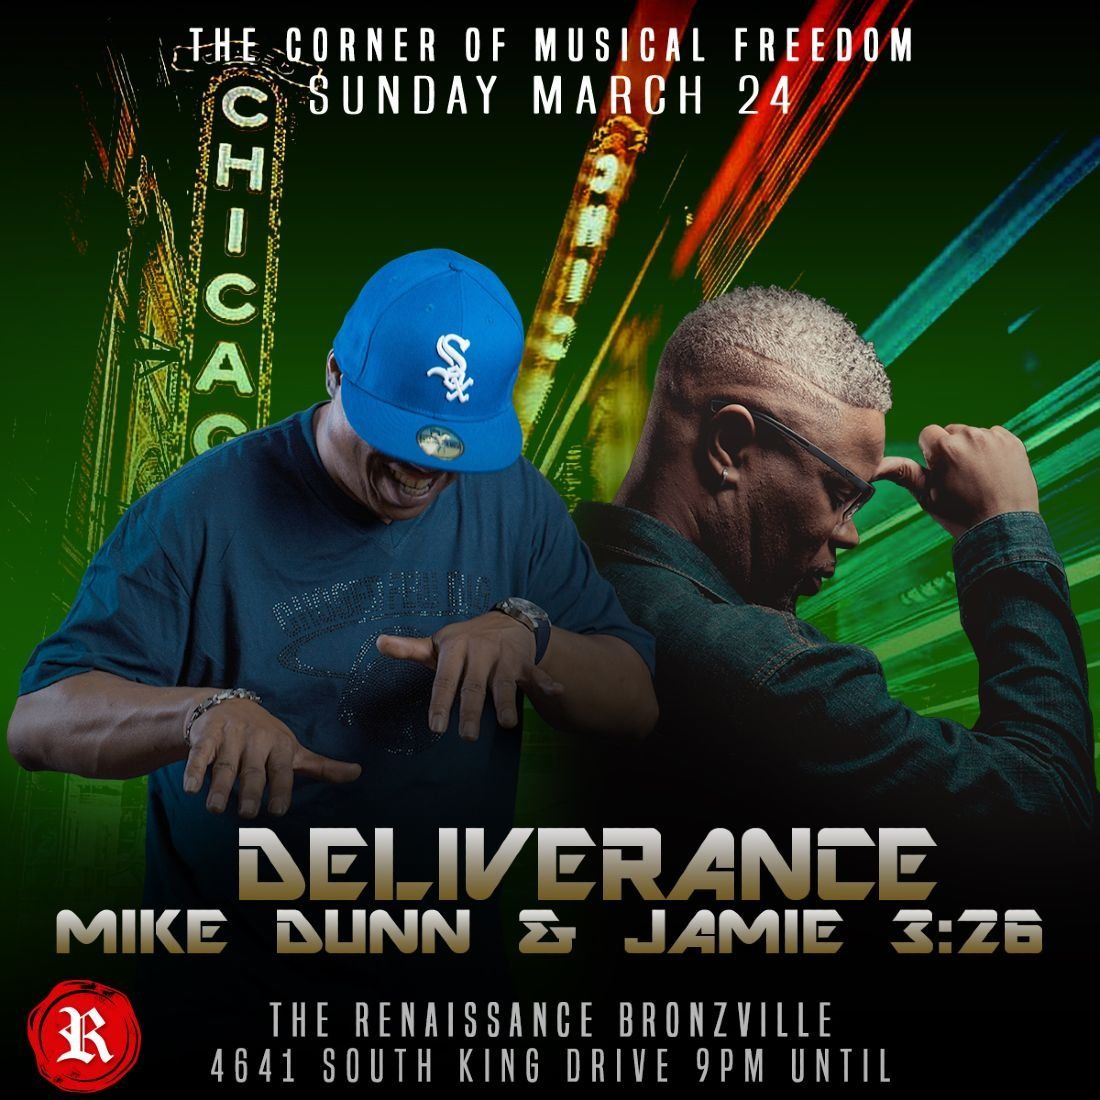 Deliverance w Mike Dunn & Jamie 326